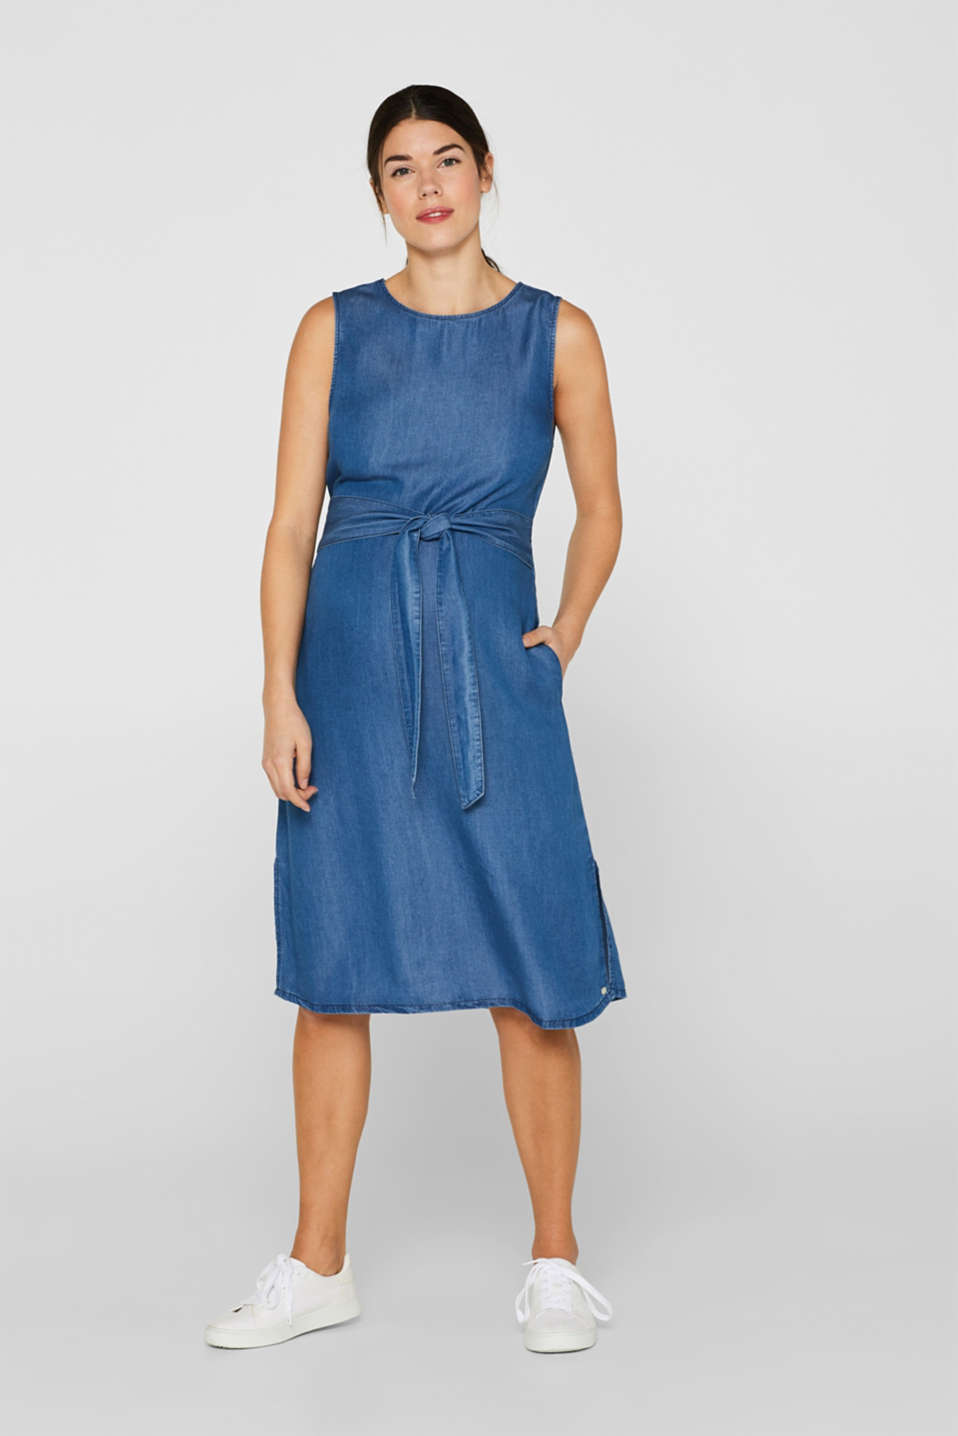 Denim dress with a belt, 100% lyocell, LCLIGHT BLUE, detail image number 1